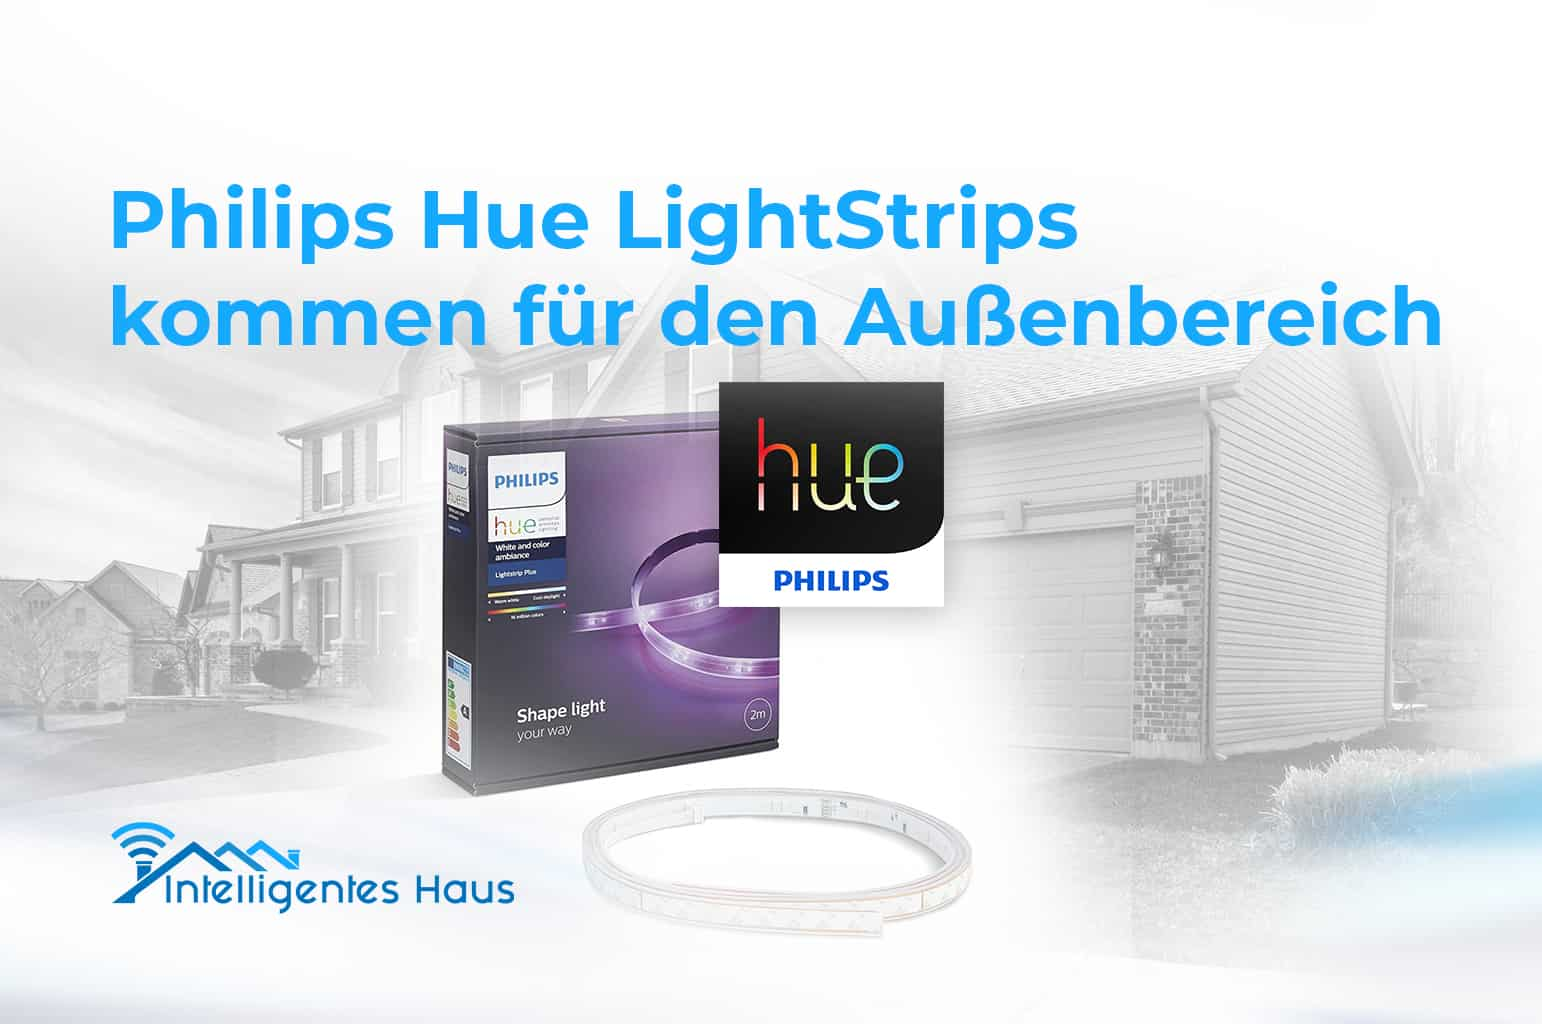 lightstrips f r drau en philips hue bringt bald zwei neue produkte auf den markt. Black Bedroom Furniture Sets. Home Design Ideas